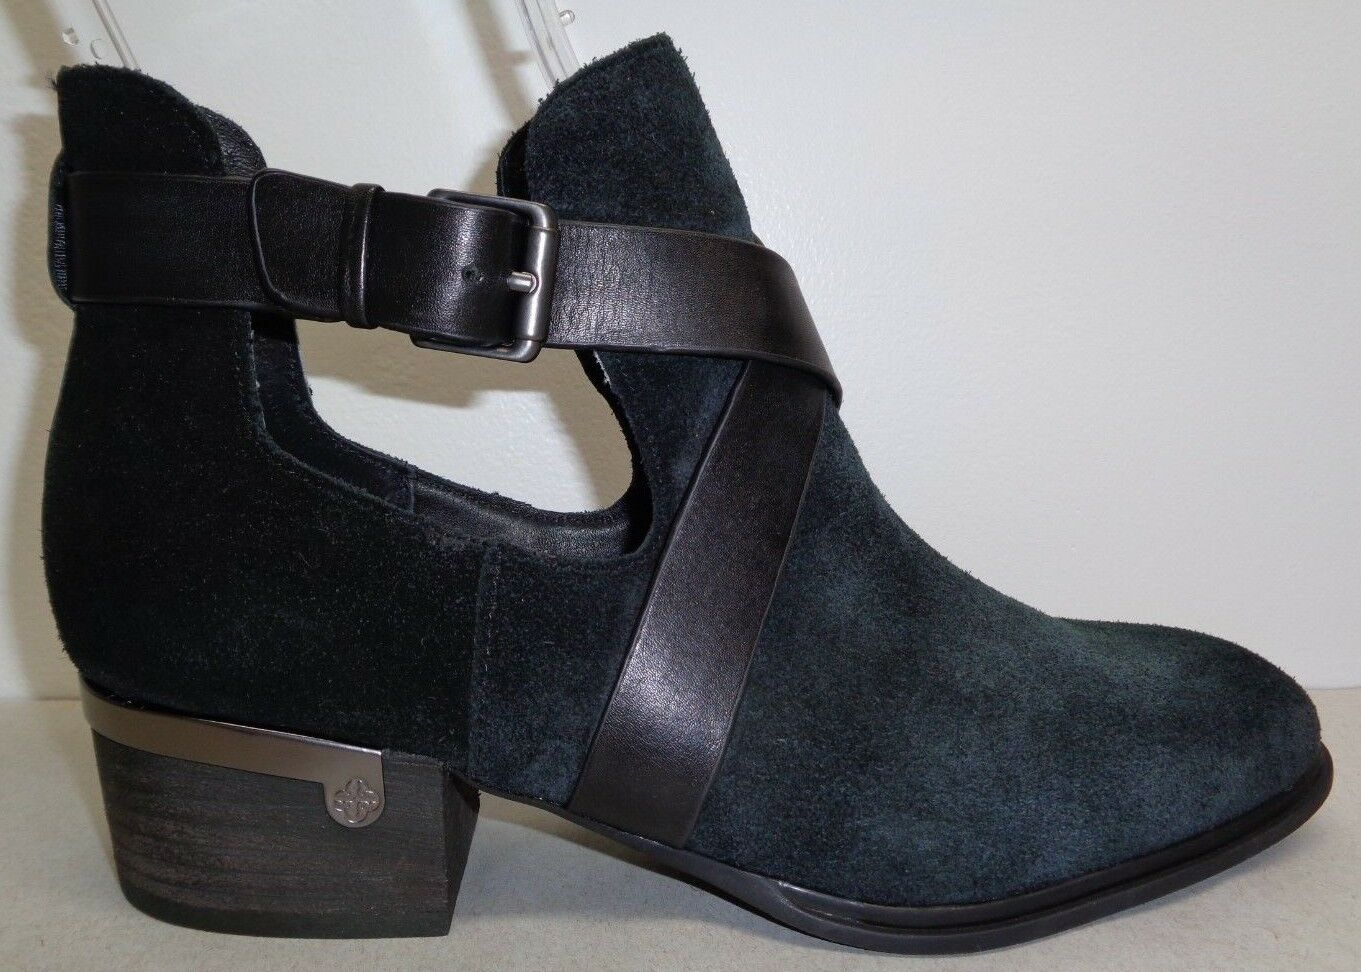 Isola Size 7 M DAVAN Black Suede Ankle Boots New Womens shoes